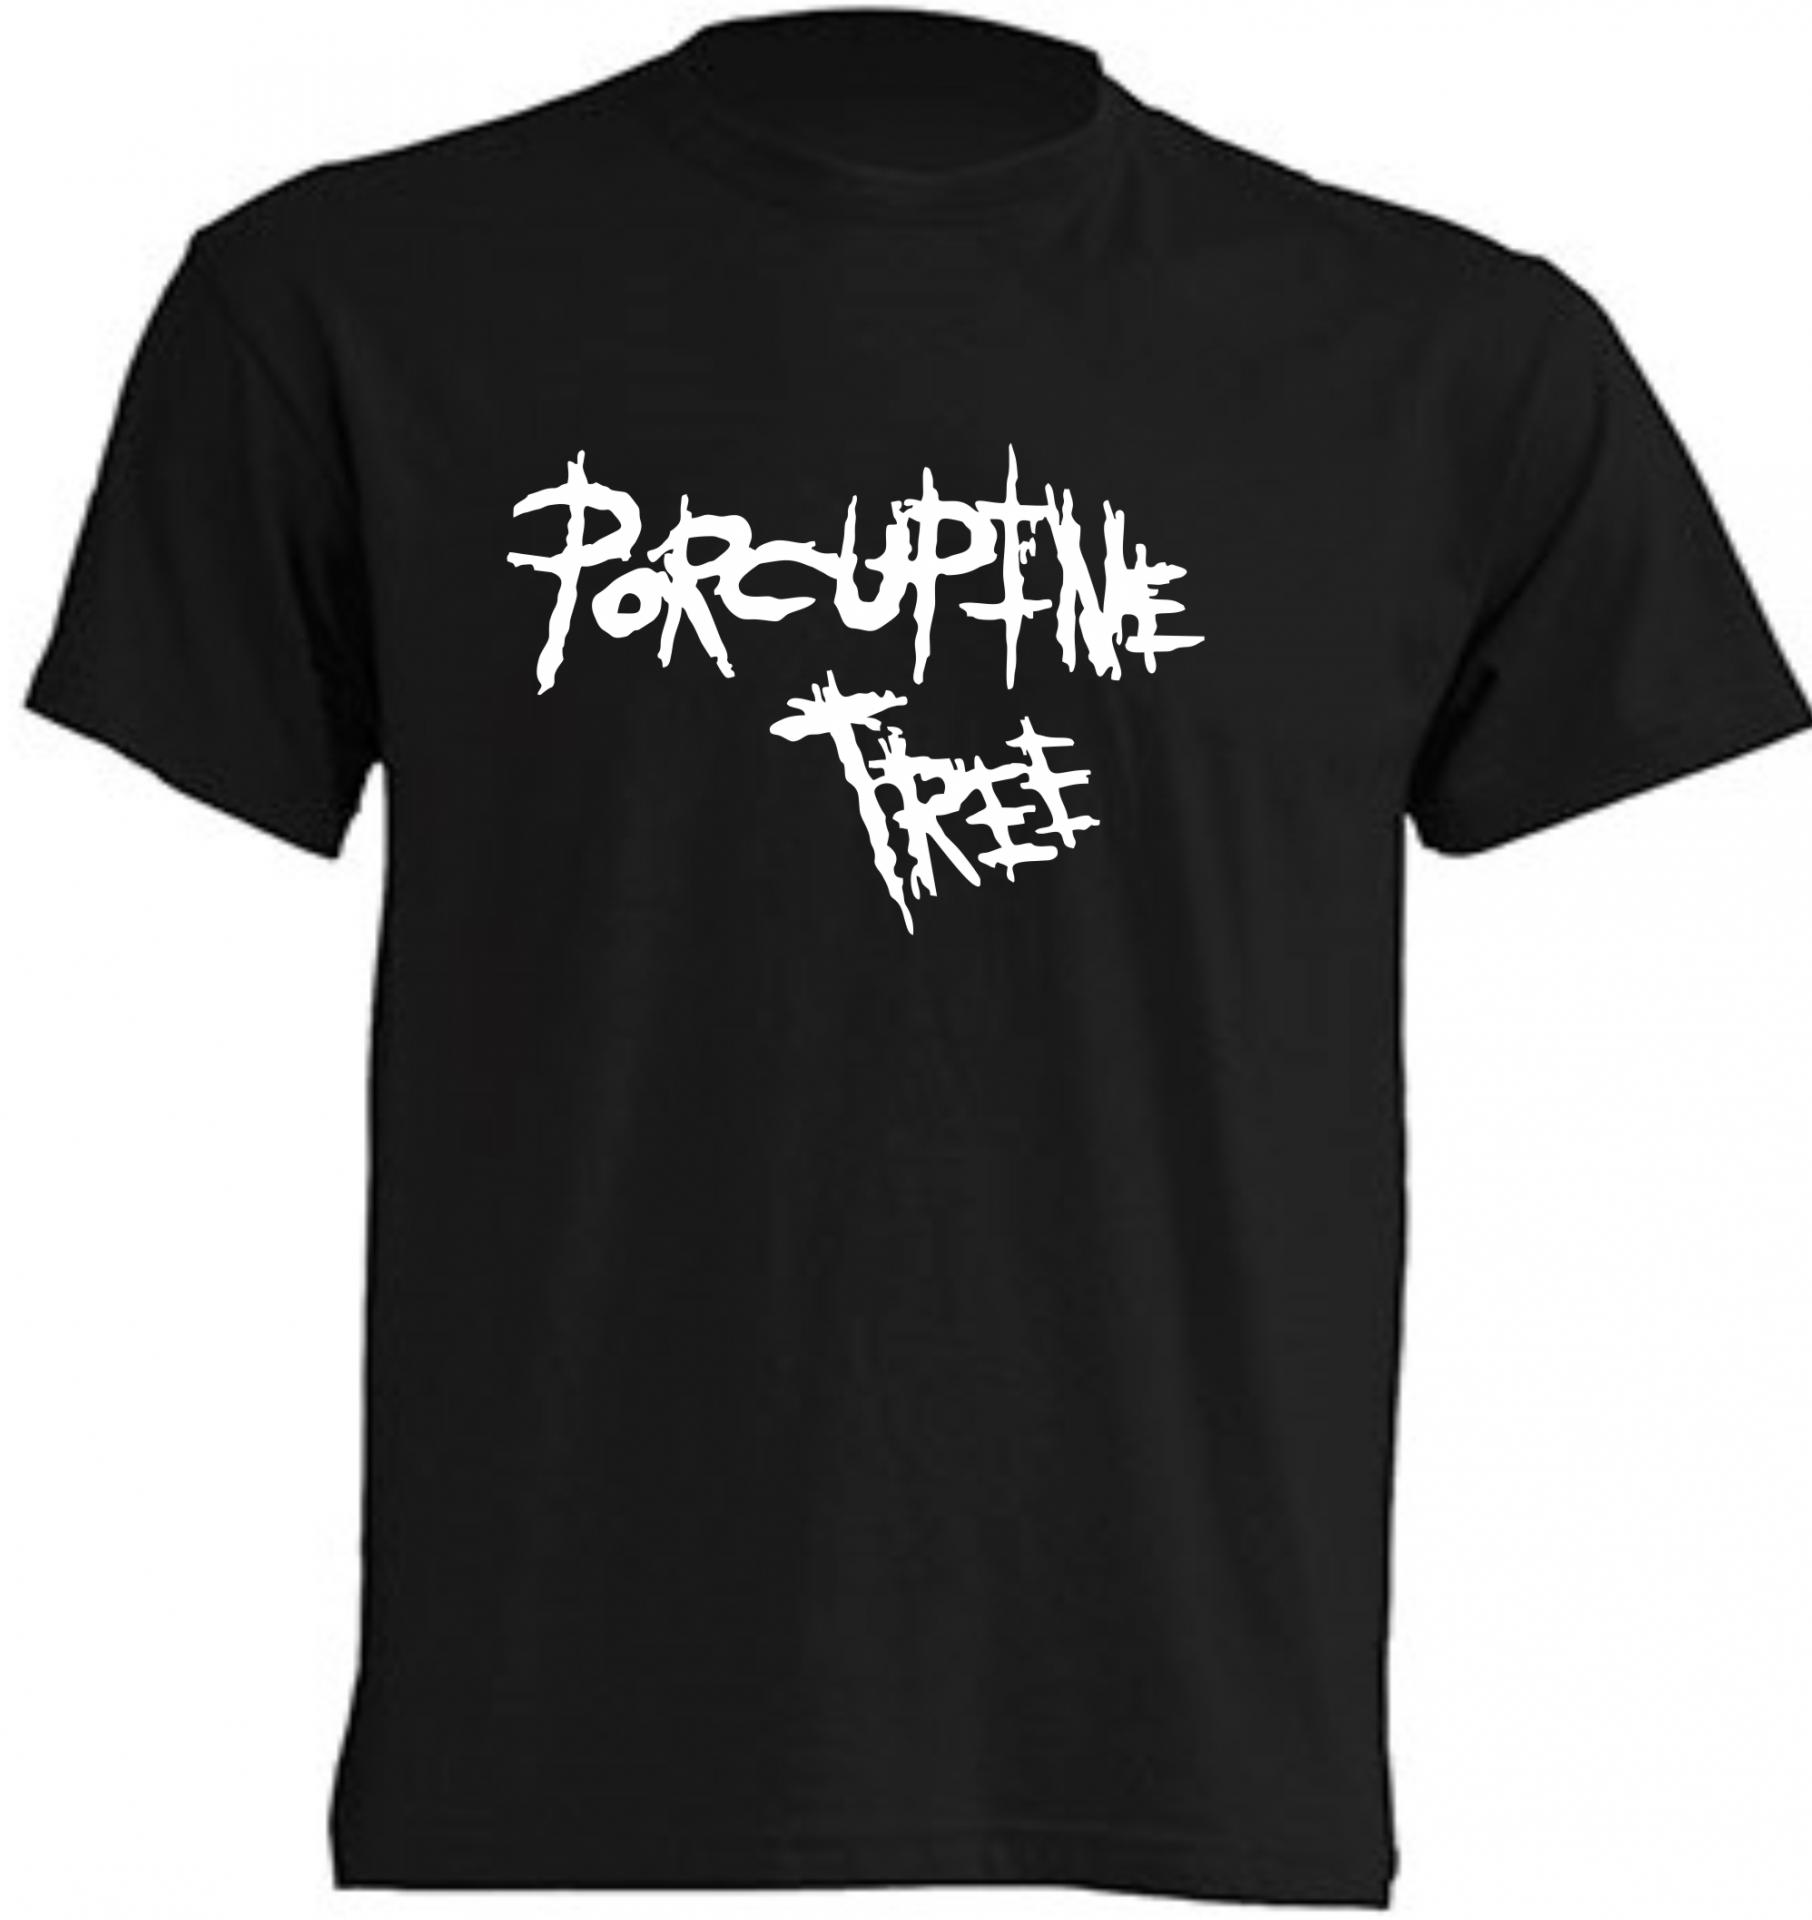 CAMISETA PORCUPINE TREE